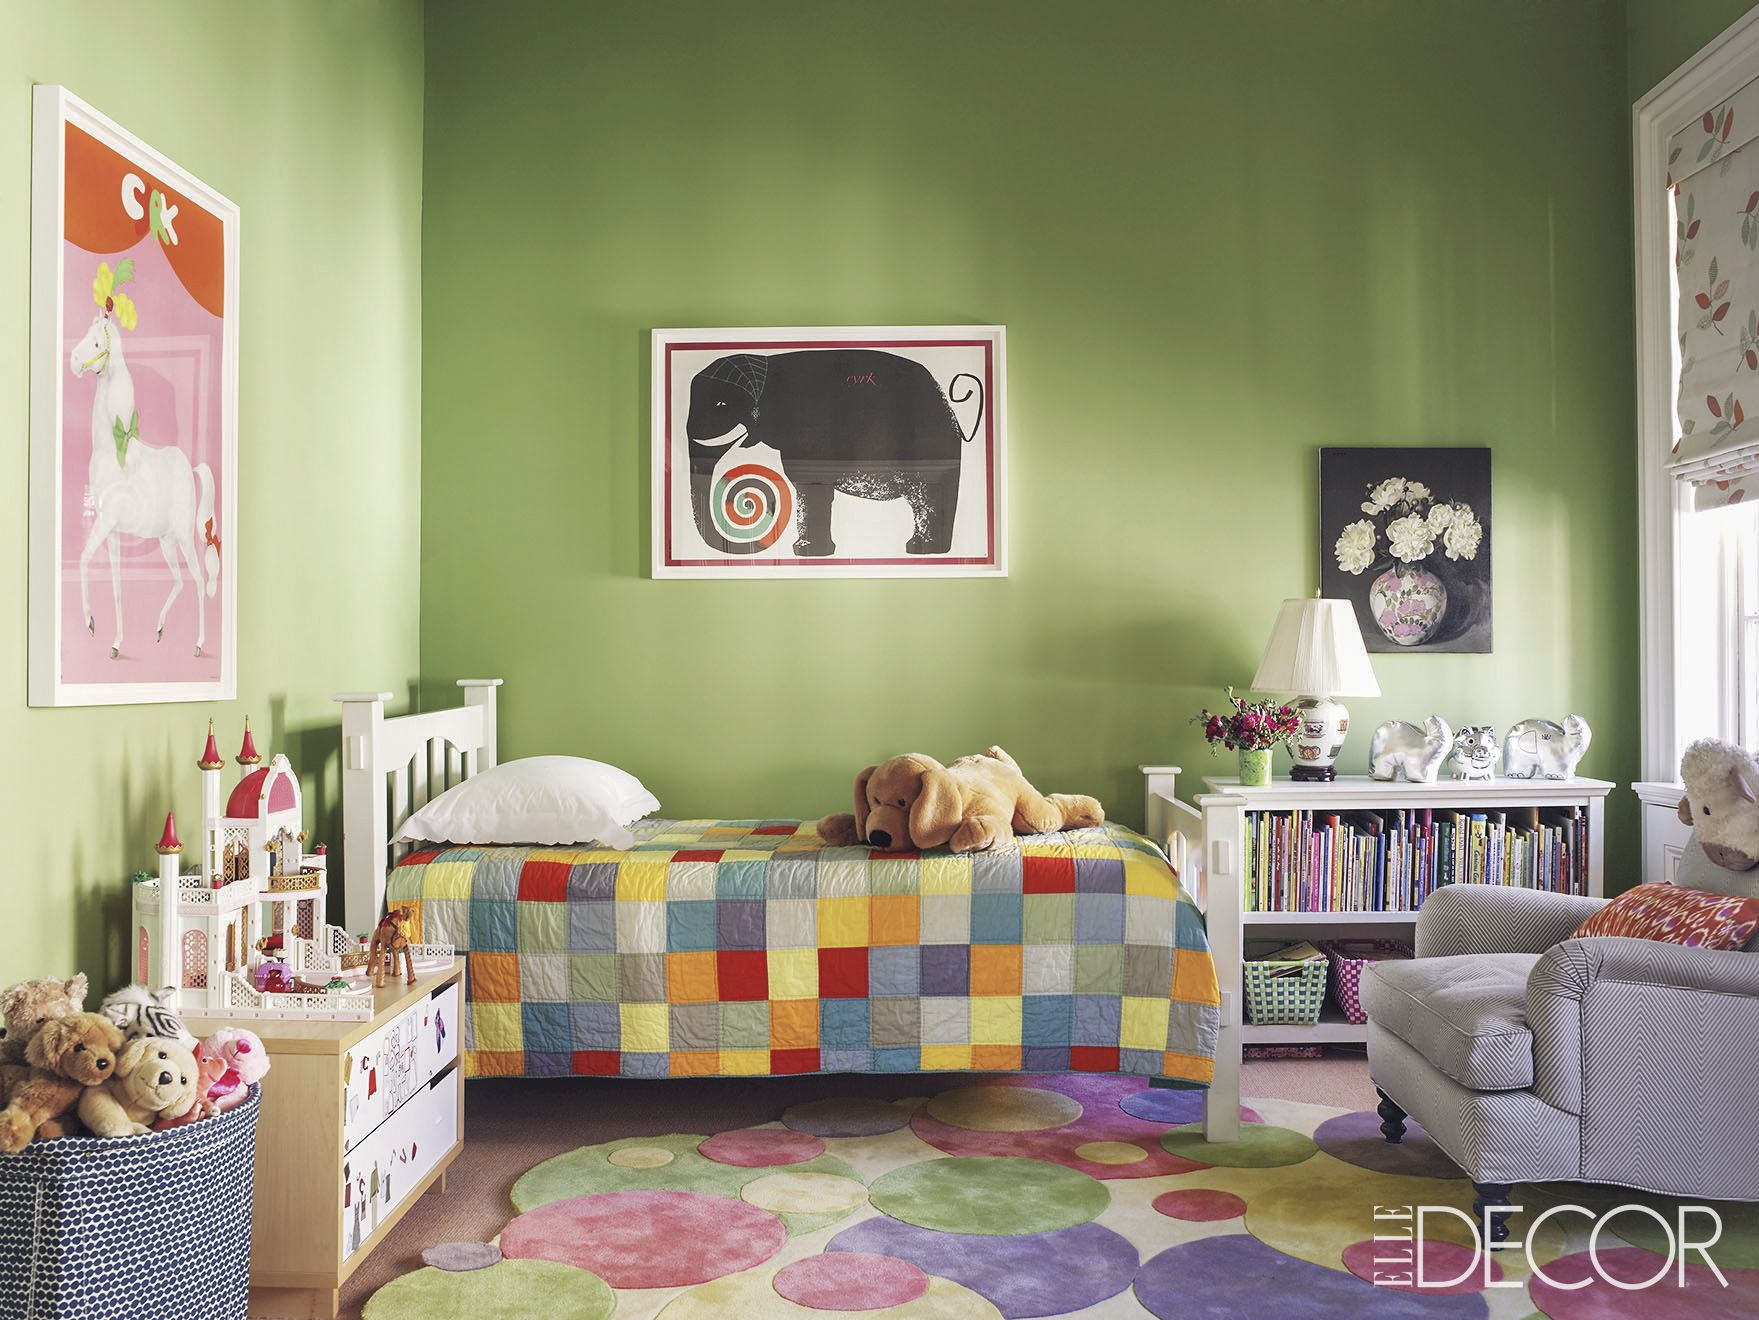 18 cool kids room decorating ideas kids room decor rh elledecor com kids room decorating ideas on a budget cool-kids-rooms decorating ideas